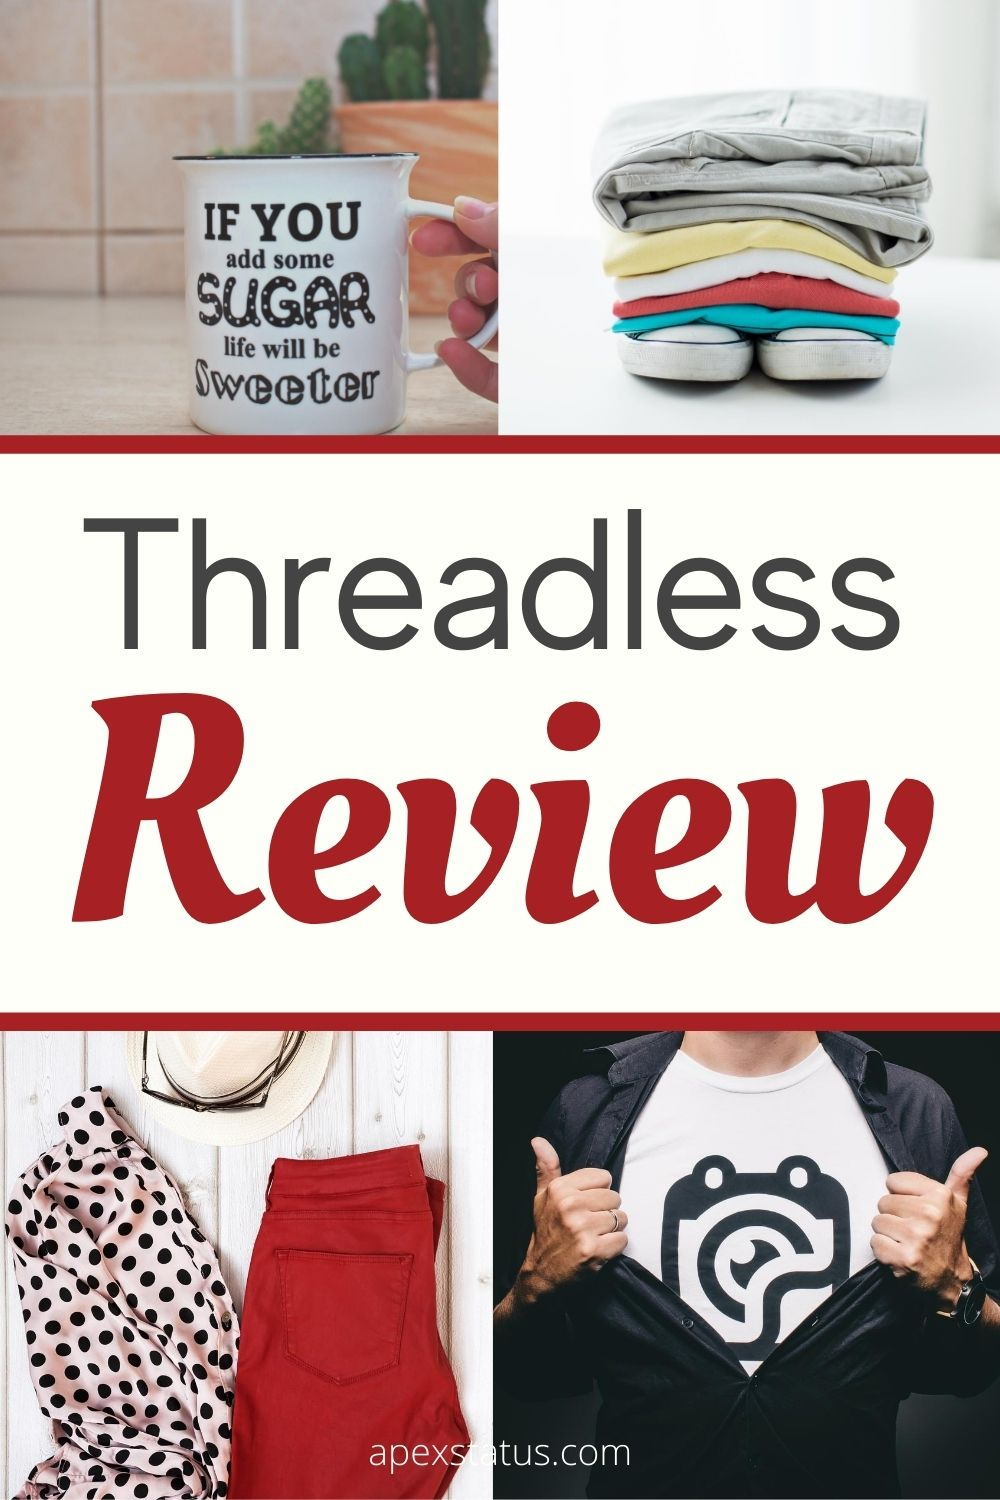 Threadless Review | Use Threadless to Make Money Online as an Artist